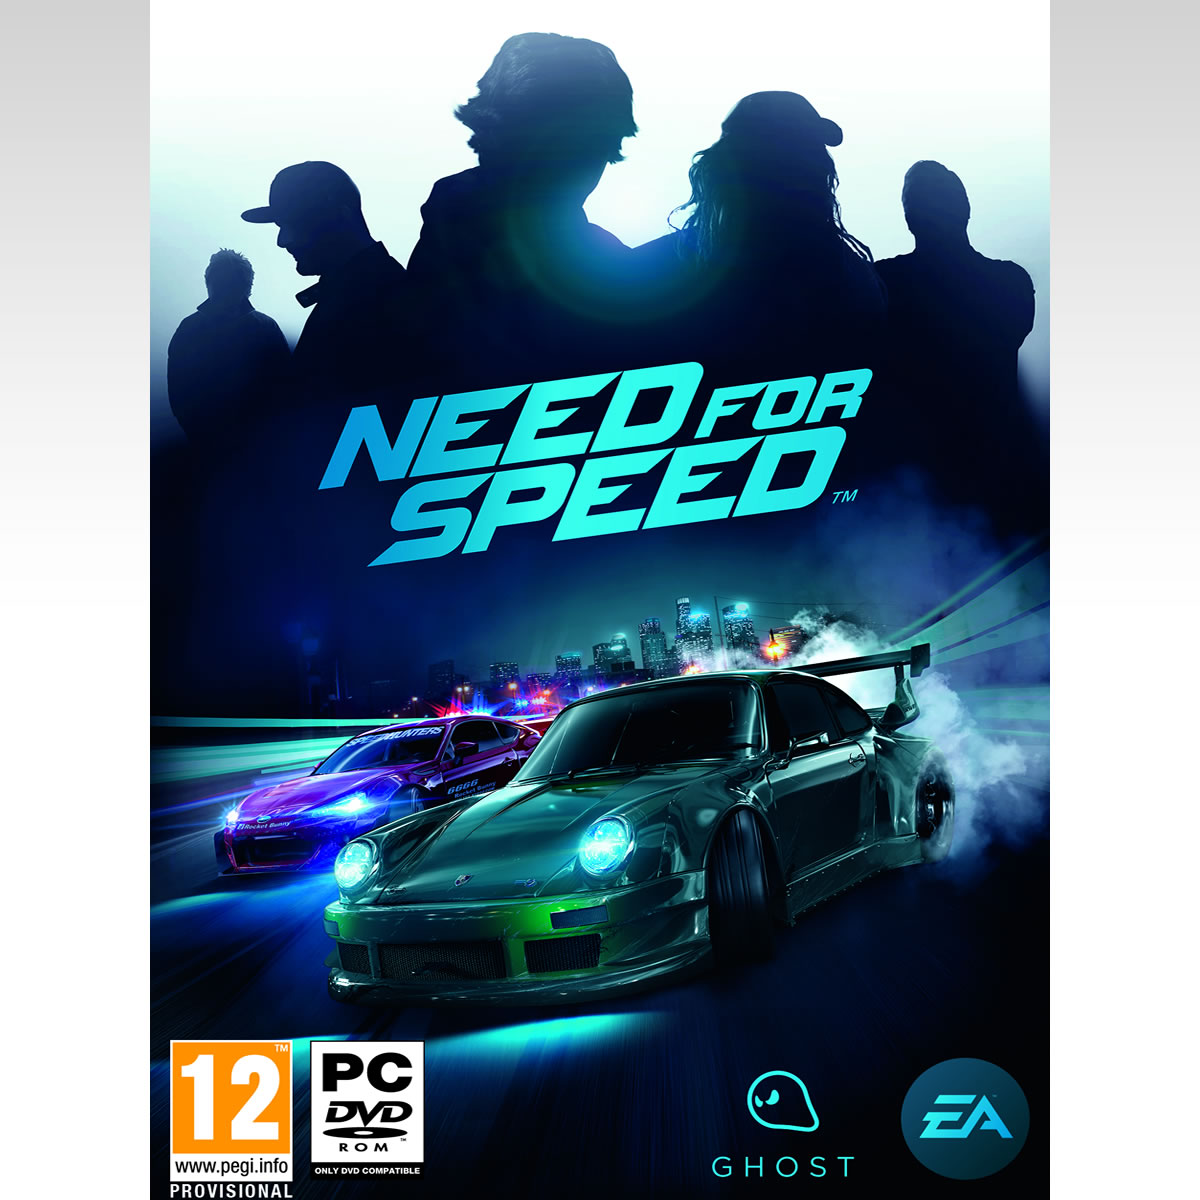 NEED FOR SPEED [2015] (PC)